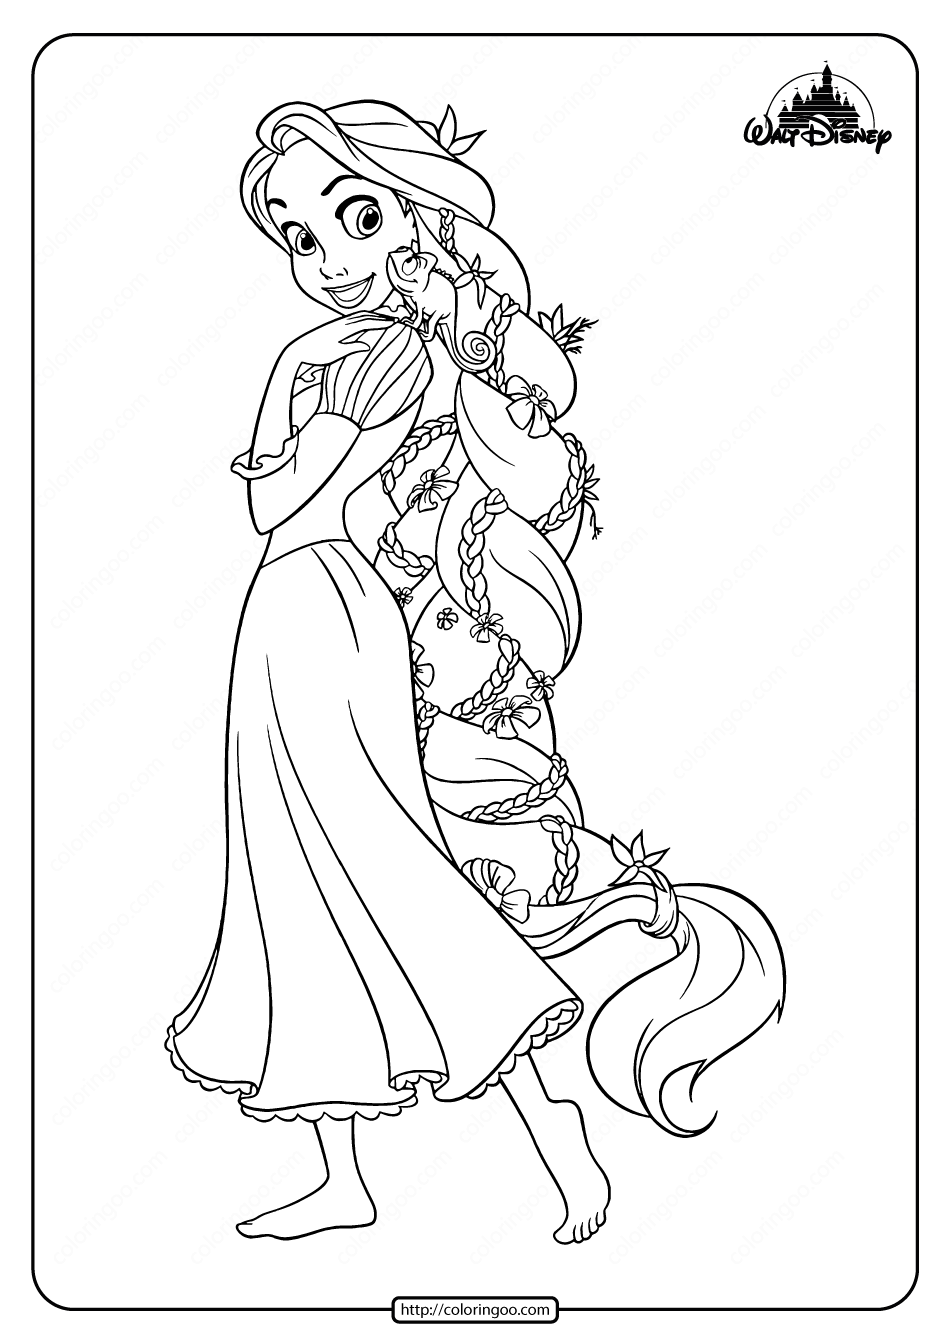 Free Printable Tangled Coloring Pages For Girls In 2020 Tangled Coloring Pages Rapunzel Coloring Pages Coloring Pages For Girls